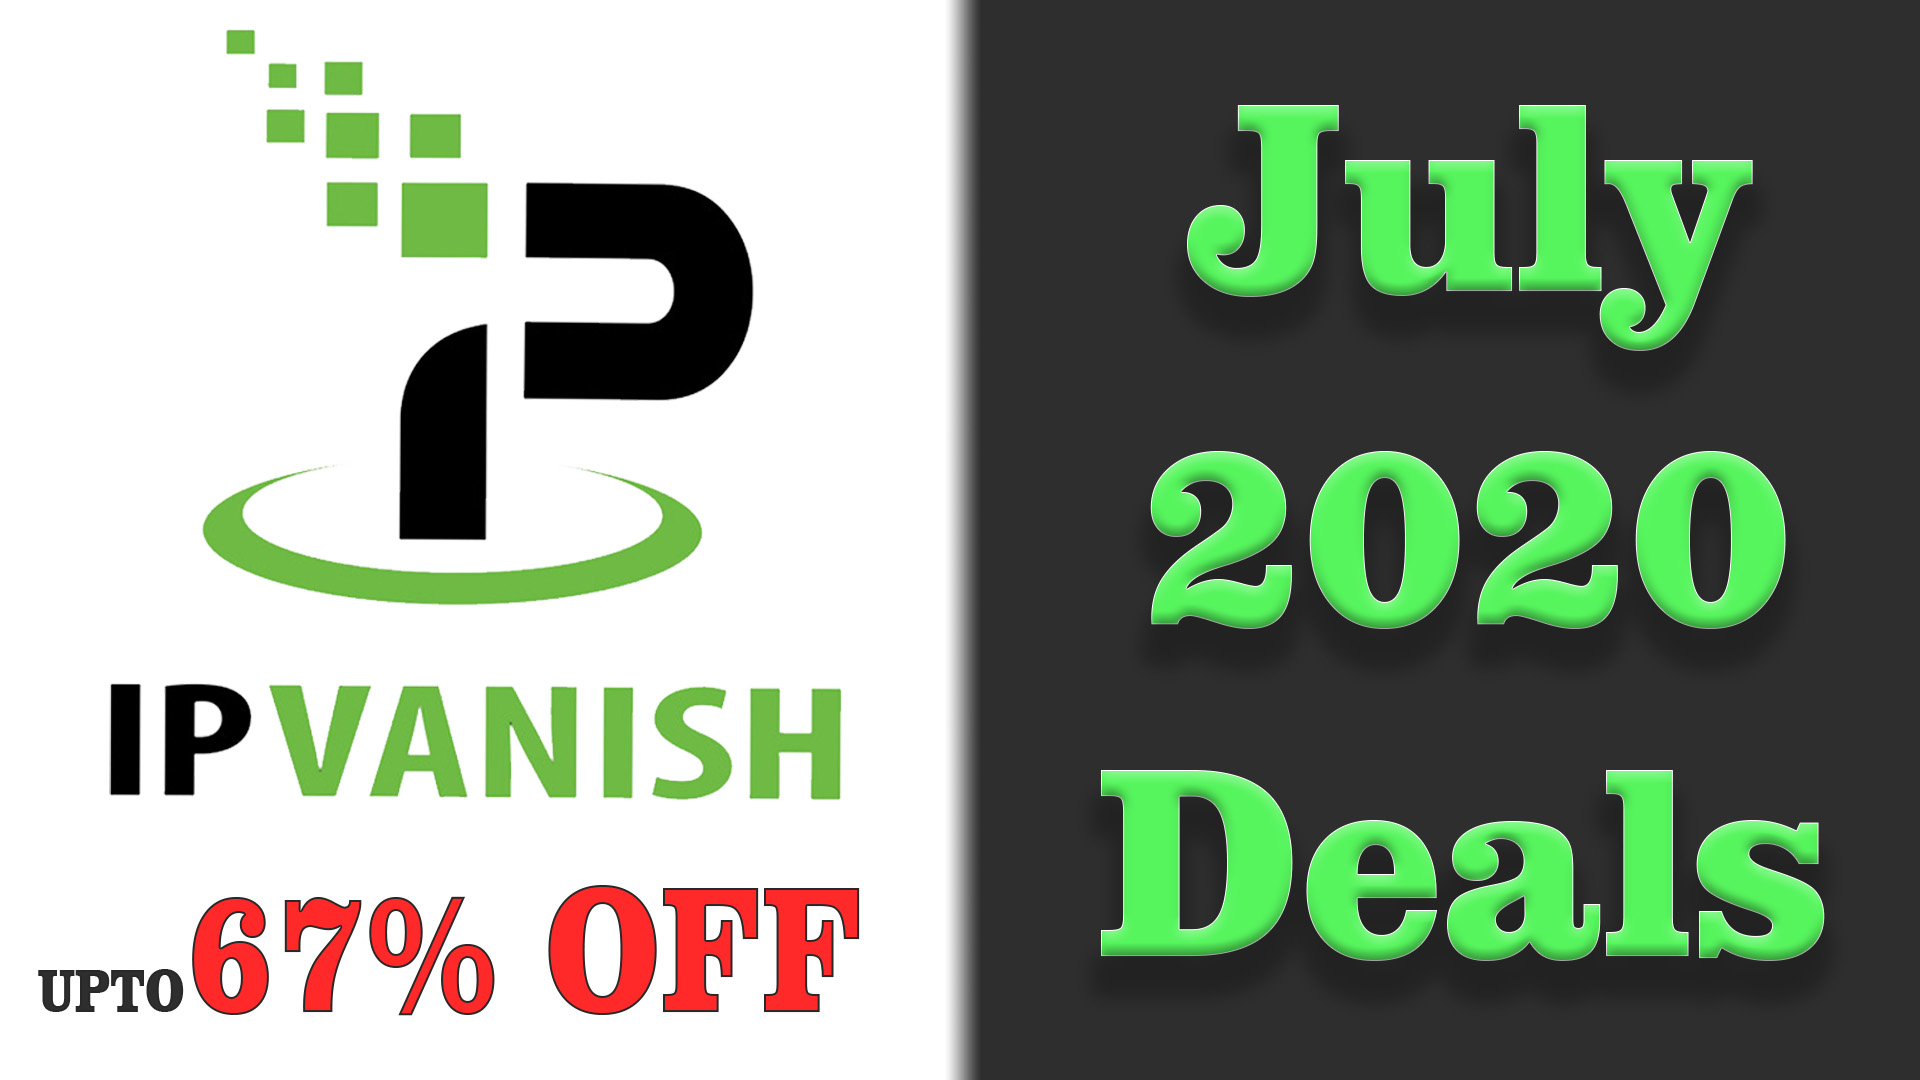 IPVanish July 2020 Deals